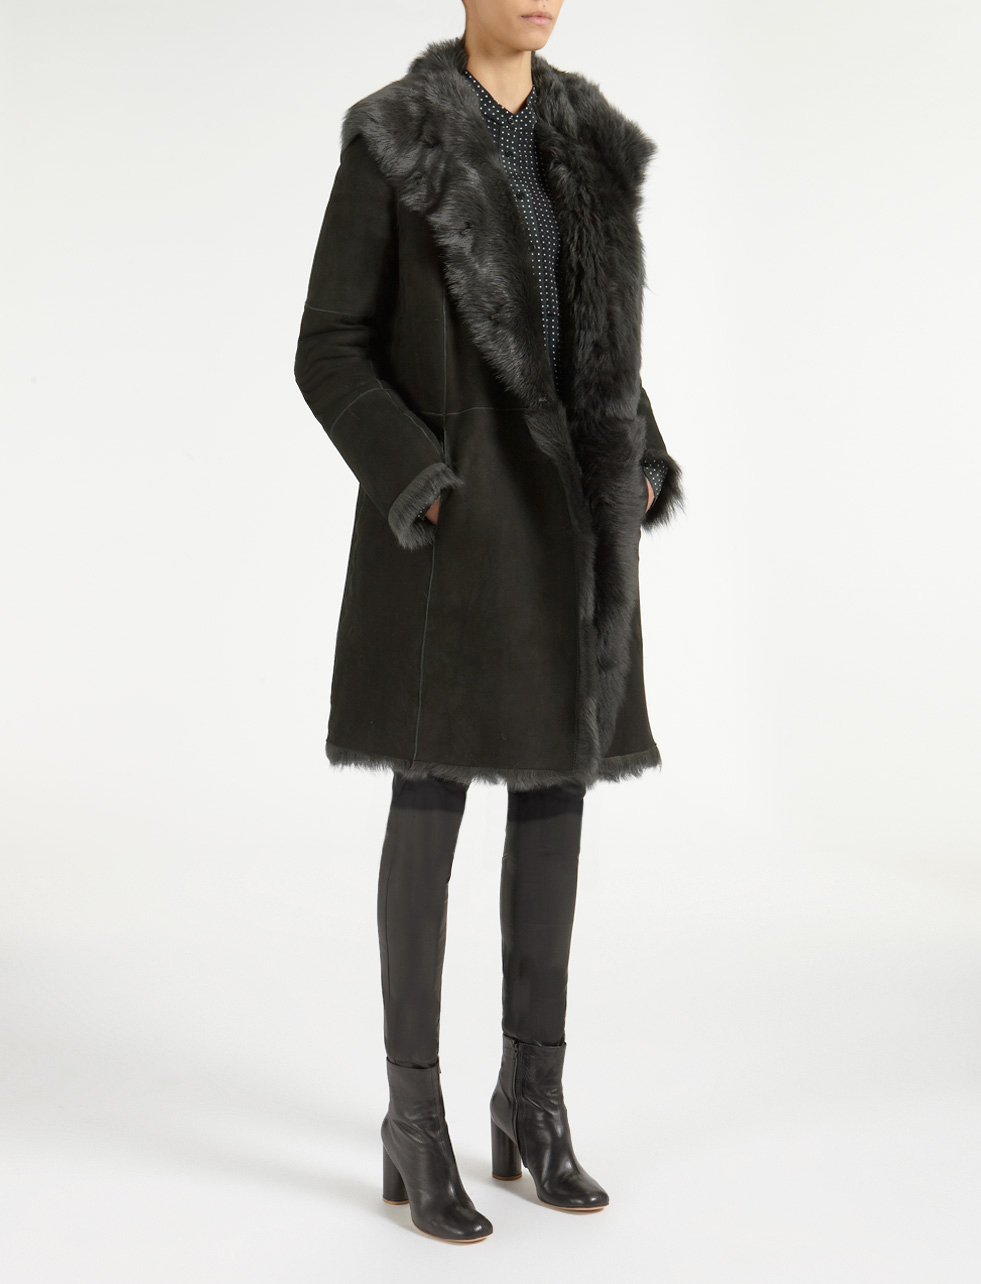 Joseph Toscana Anais Sheepskin Coat in Green | Lyst